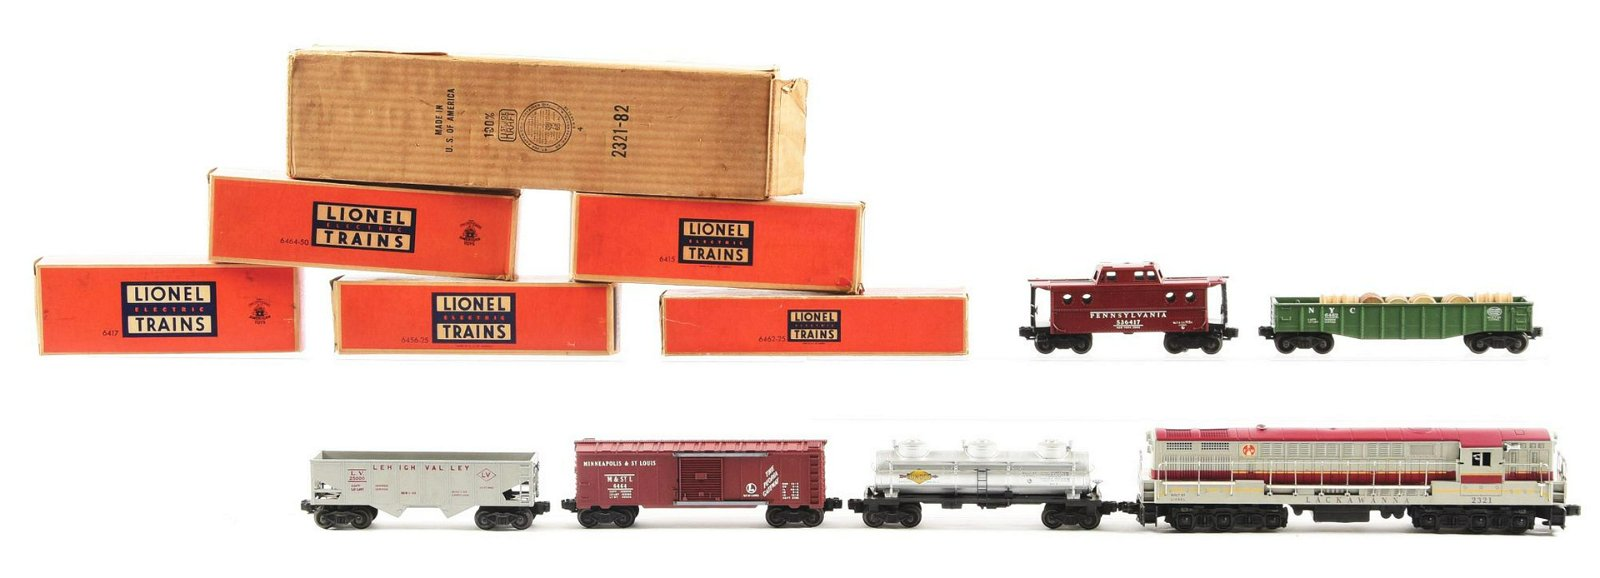 Lionel Train 2219W Lackawanna Diesel Set.